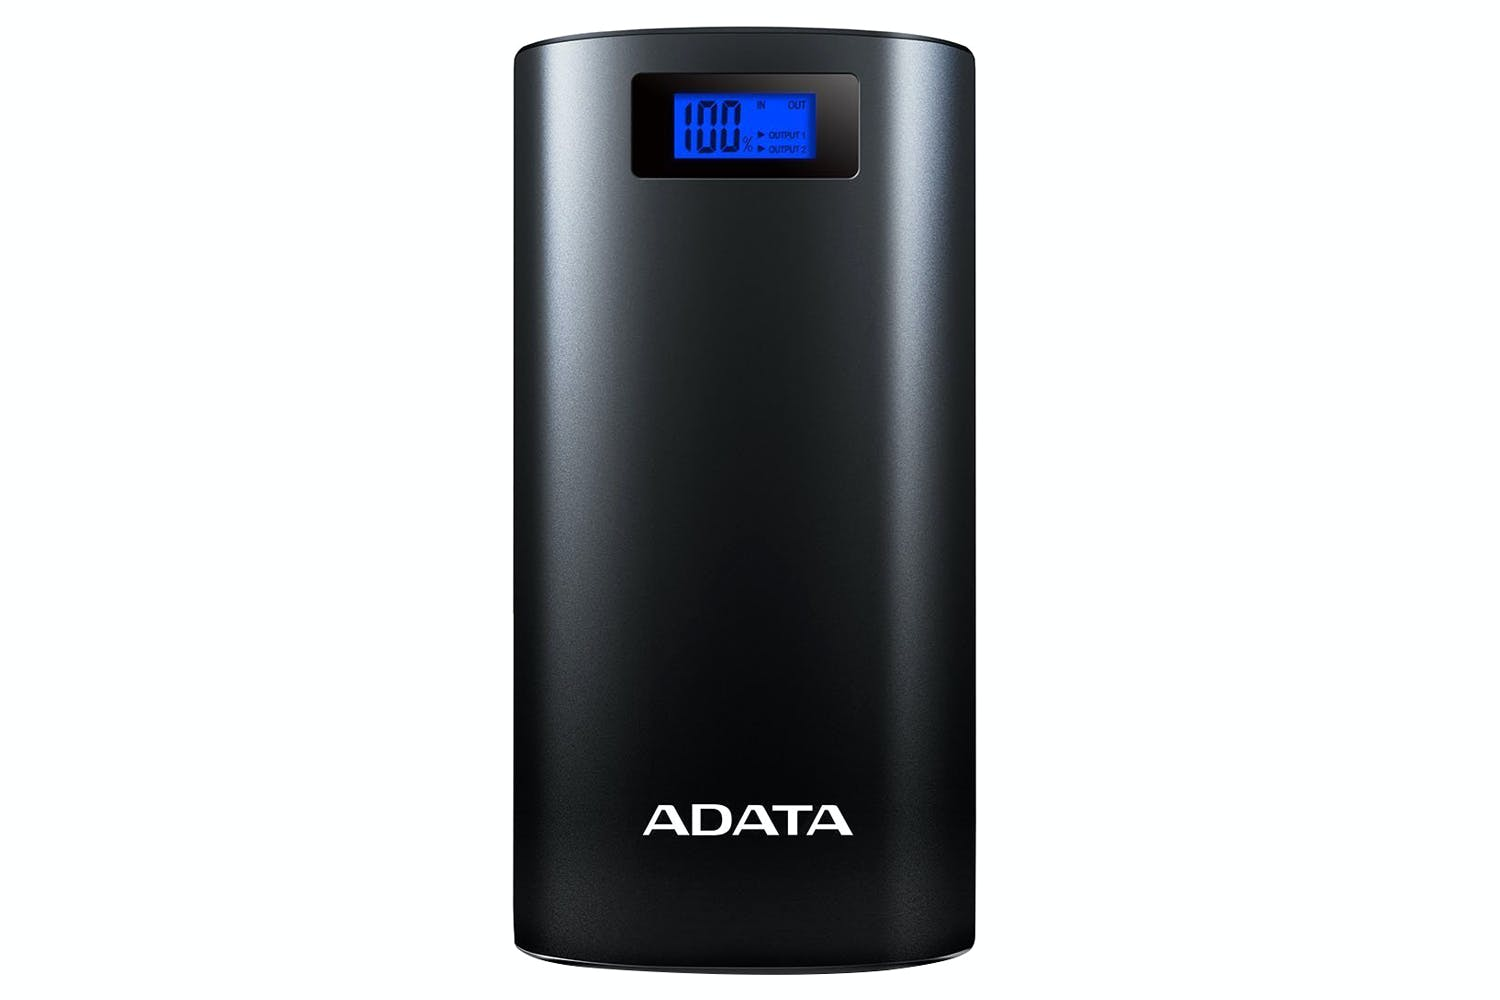 ADATA P20000D Power Bank | Black